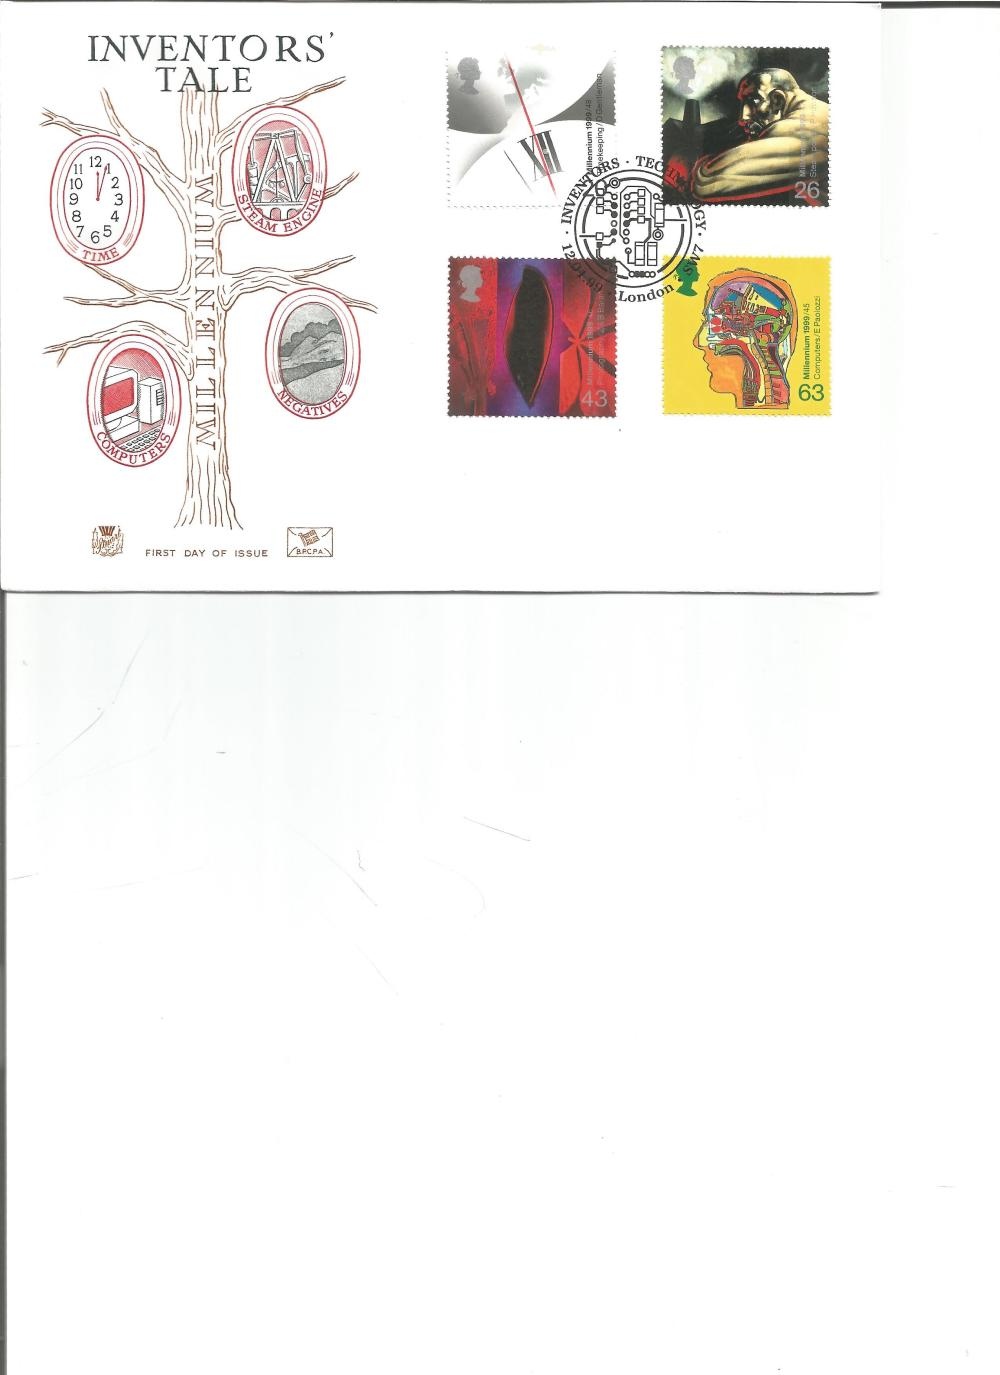 FDC Inventors Tale c/w set of four stamps PM Inventors Technology 12. 04. 89 London SW7. We